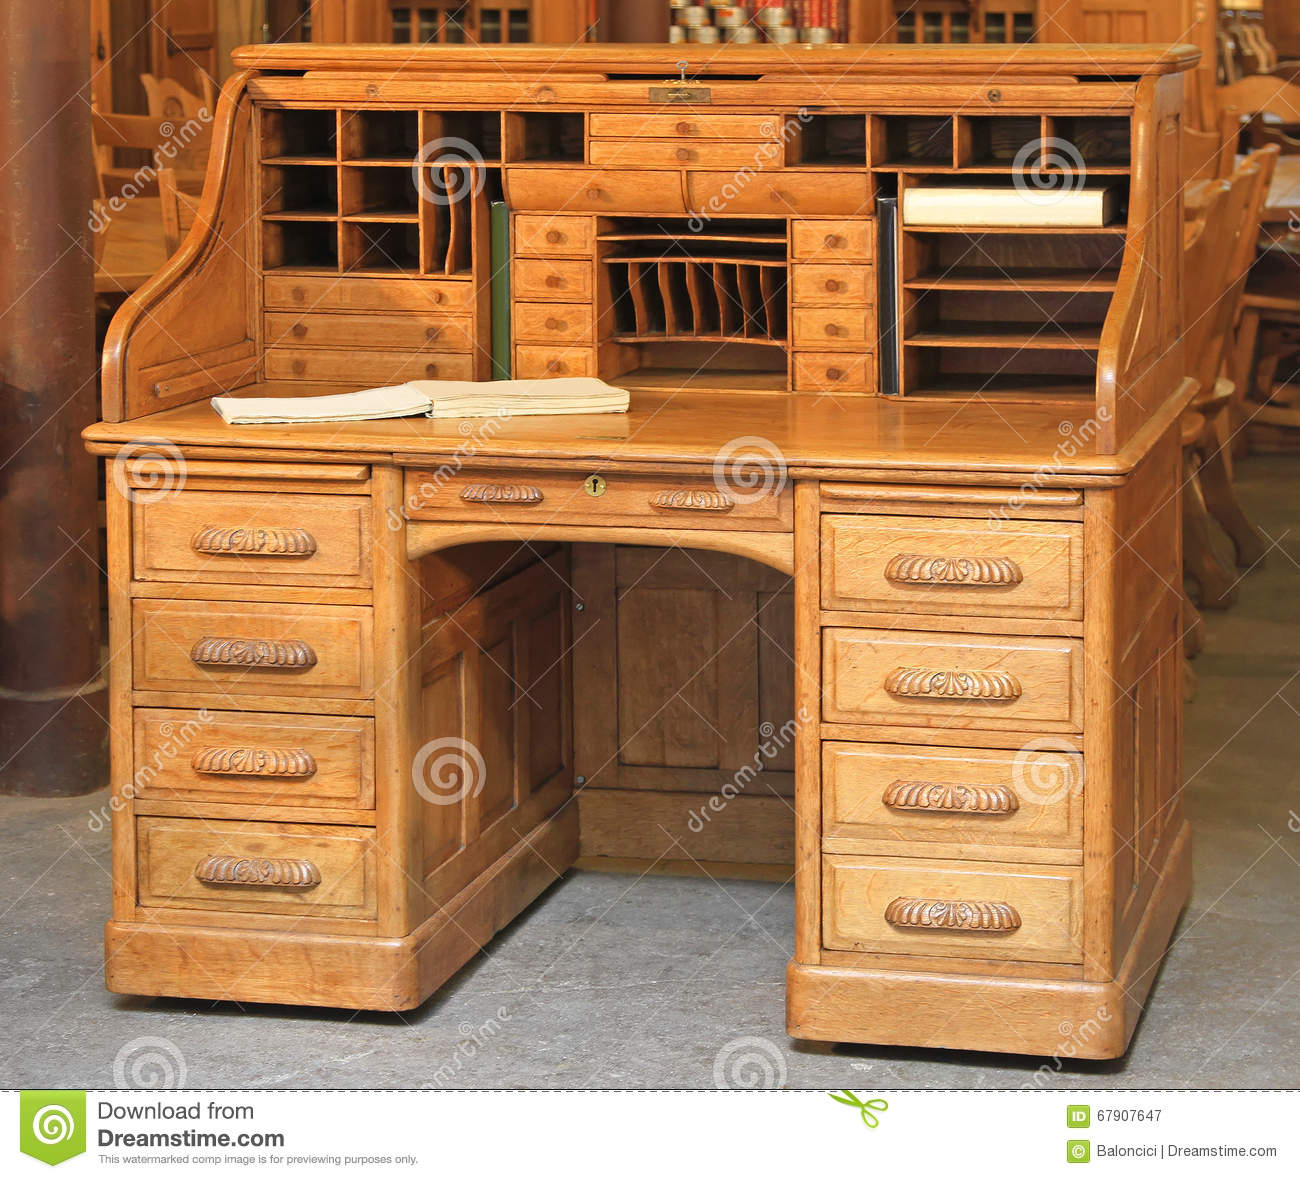 Vintage Roll Top Desk Stock Image Image Of Drawers